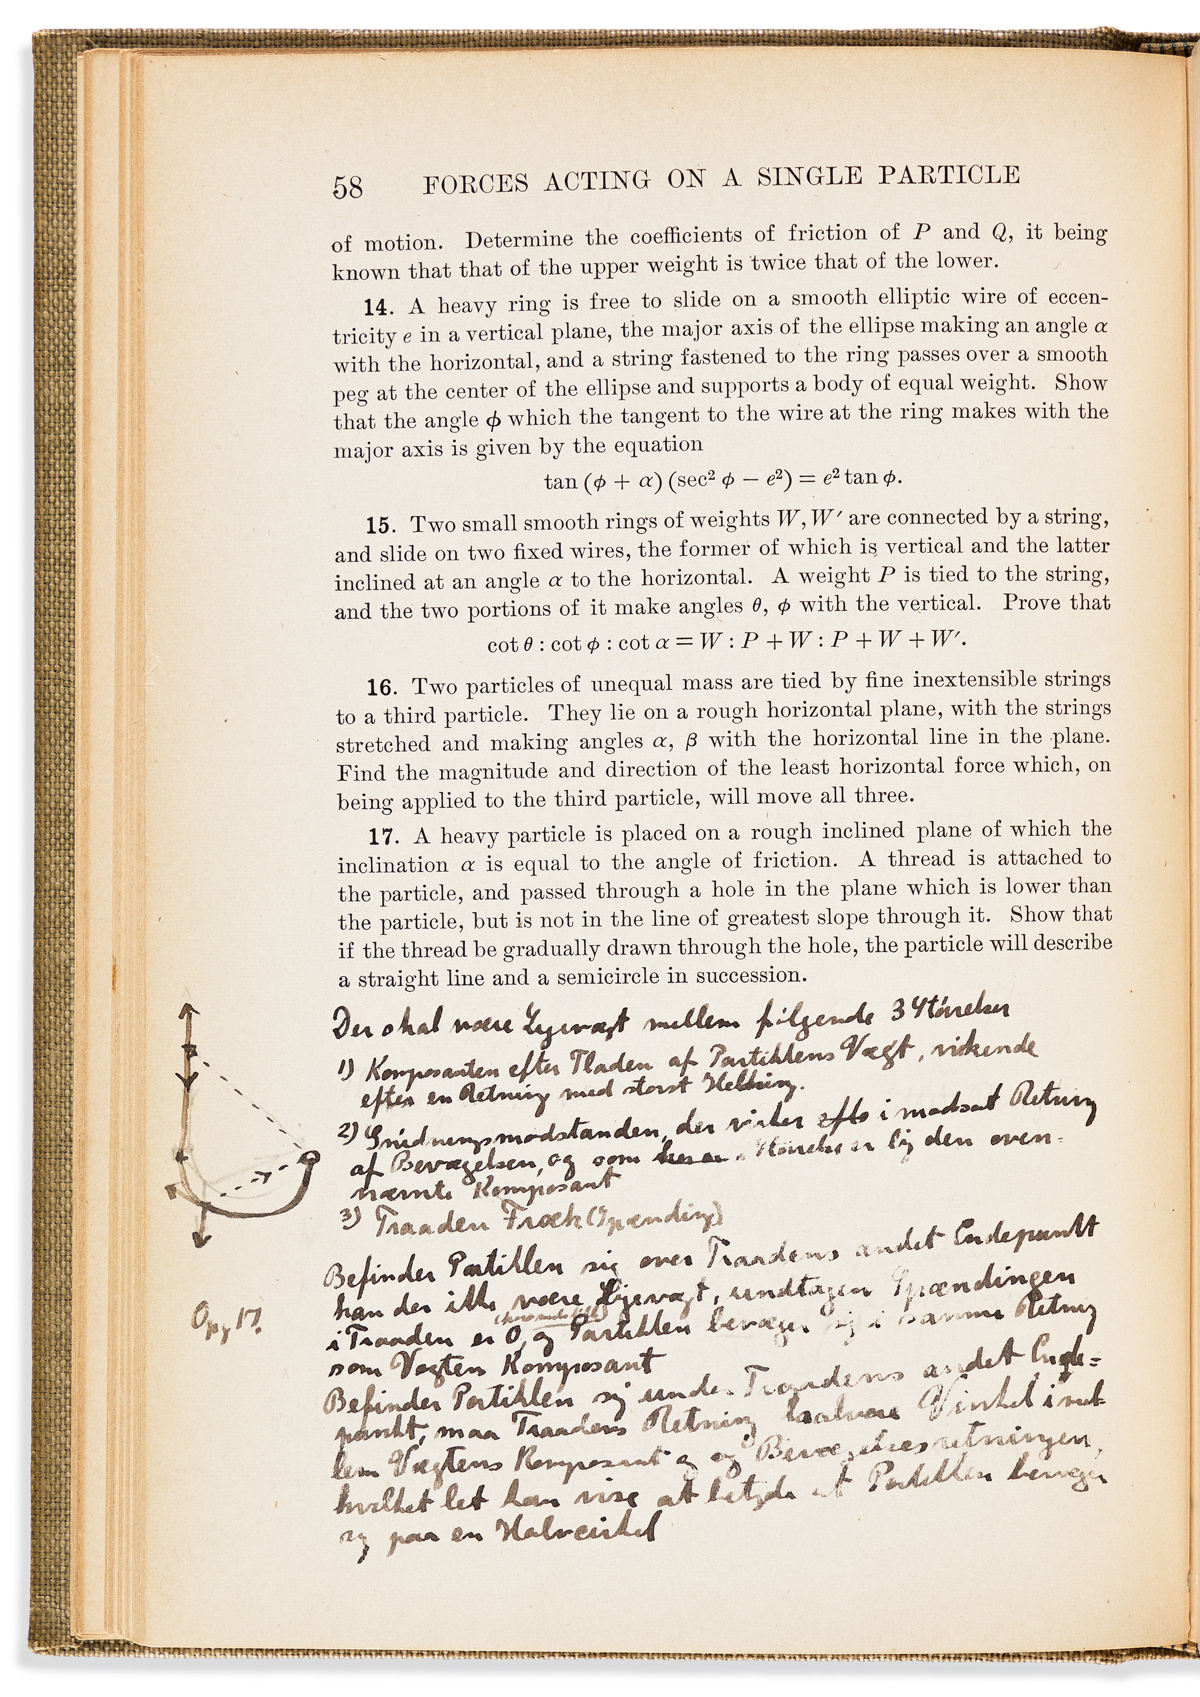 (SCIENTISTS.) BOHR, NEILS. James Hopwood Jeans. An Elementary Treatise on Theoretical Mechanics. Signed on front blank, with a 16-line